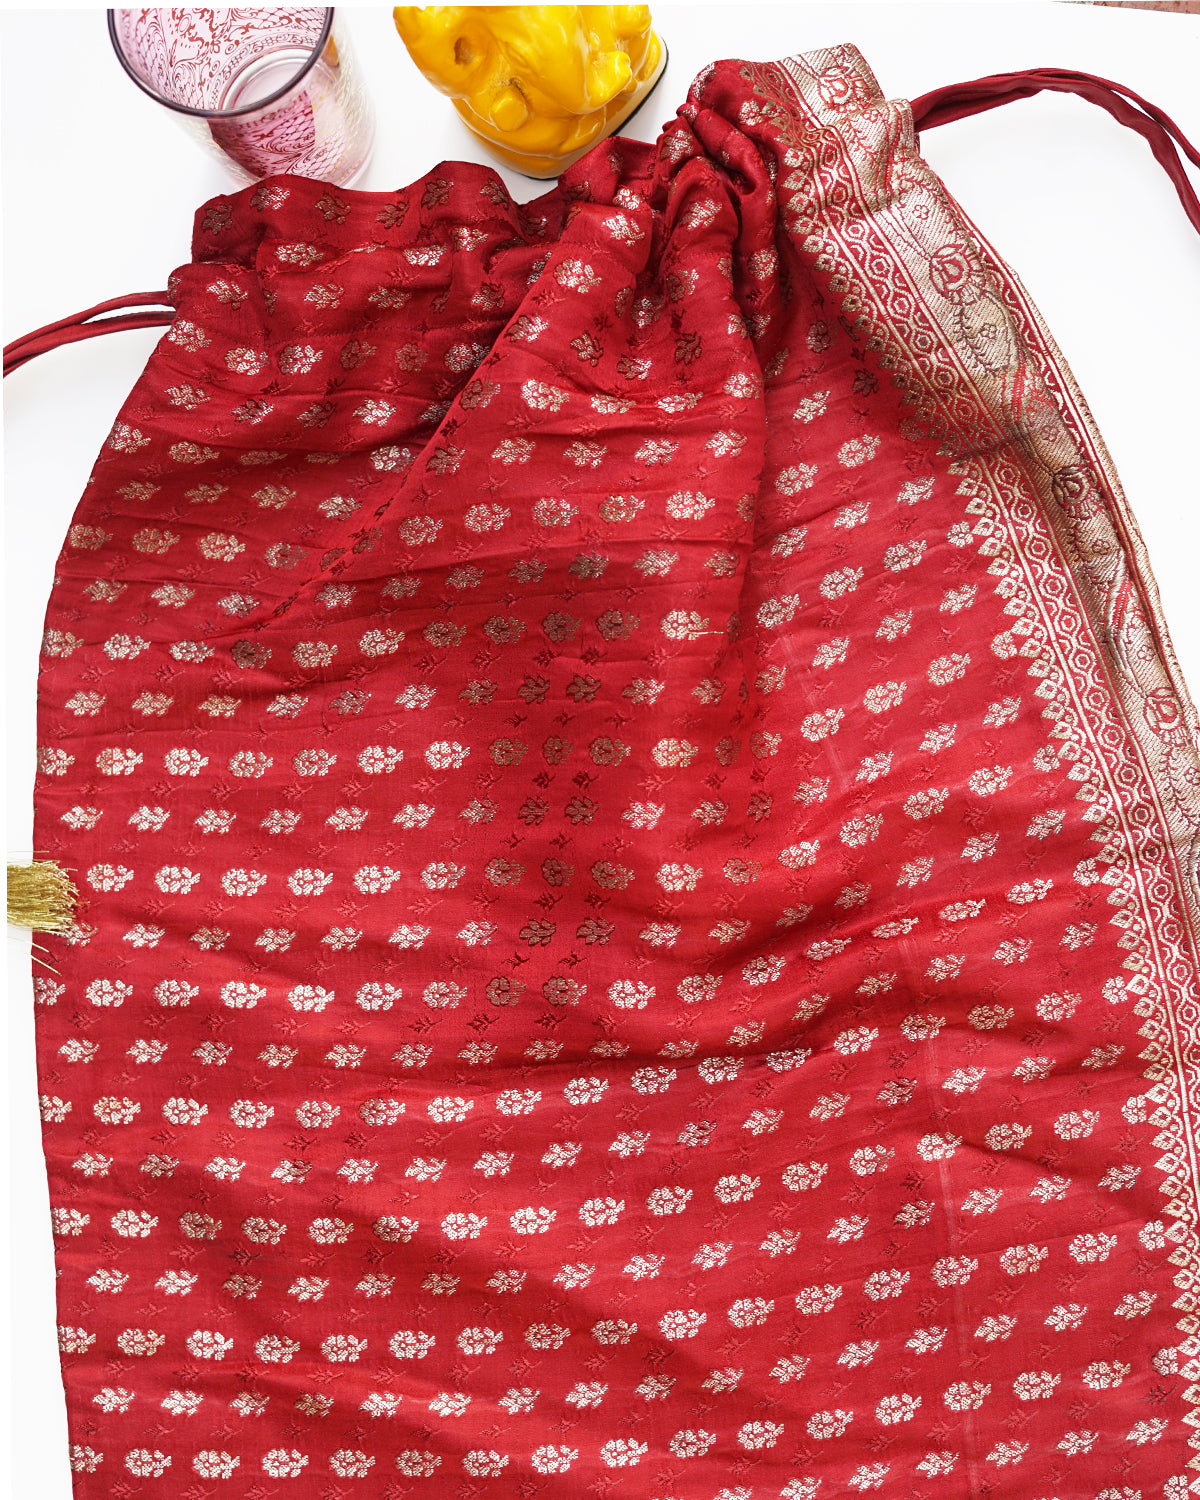 Saheli upcycled red sari bag